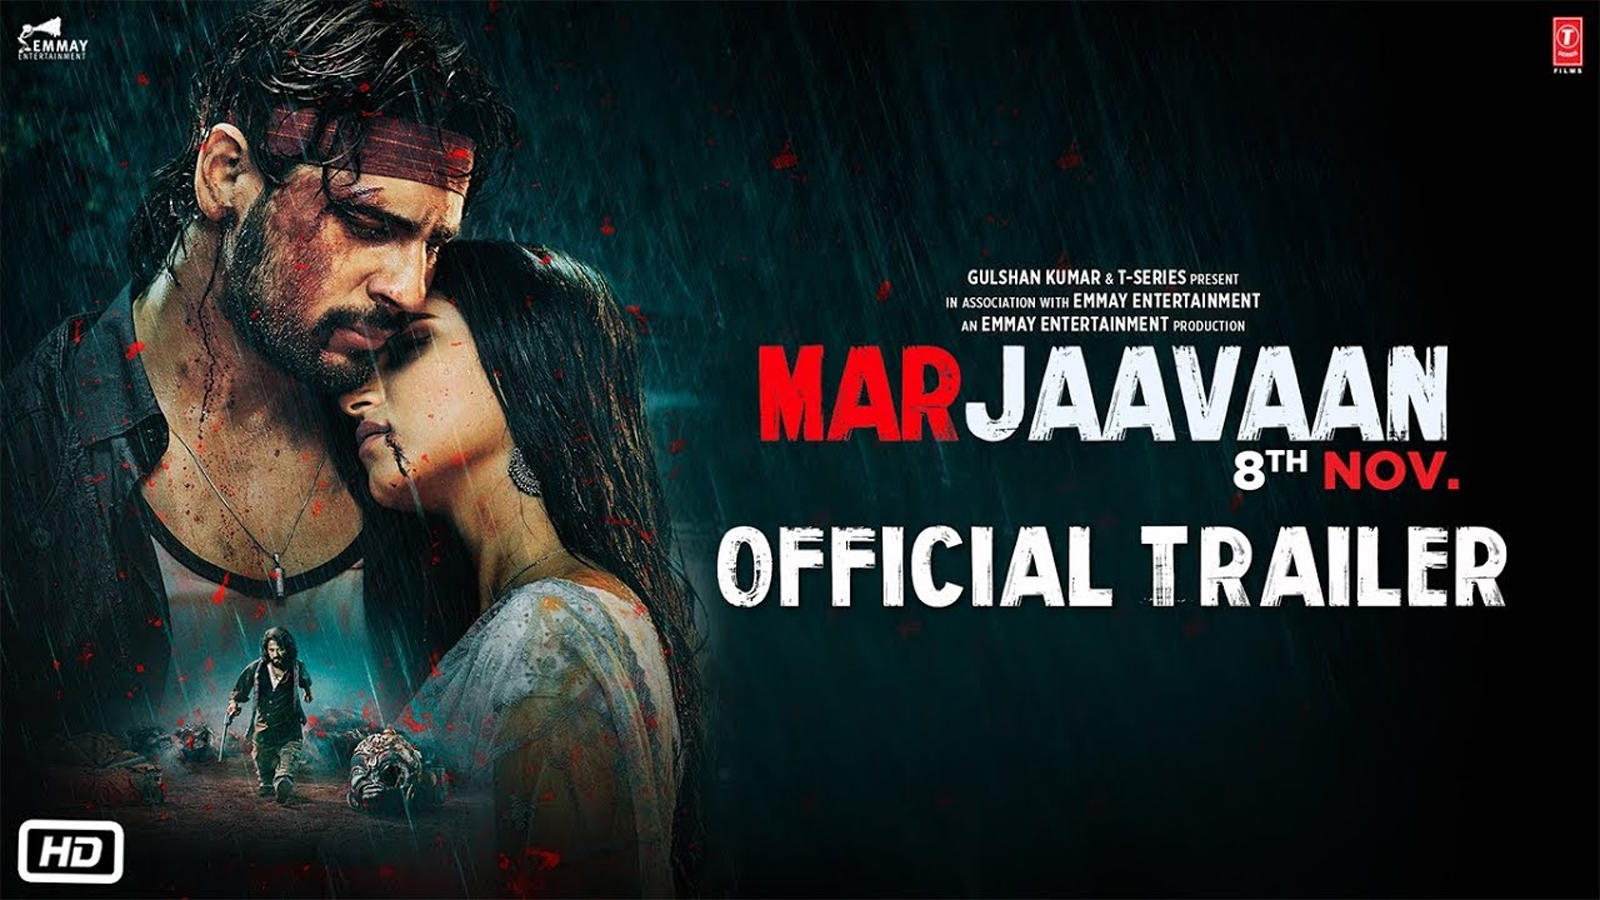 Marjaavaan Official Trailer Hindi Movie News Bollywood Times Of India